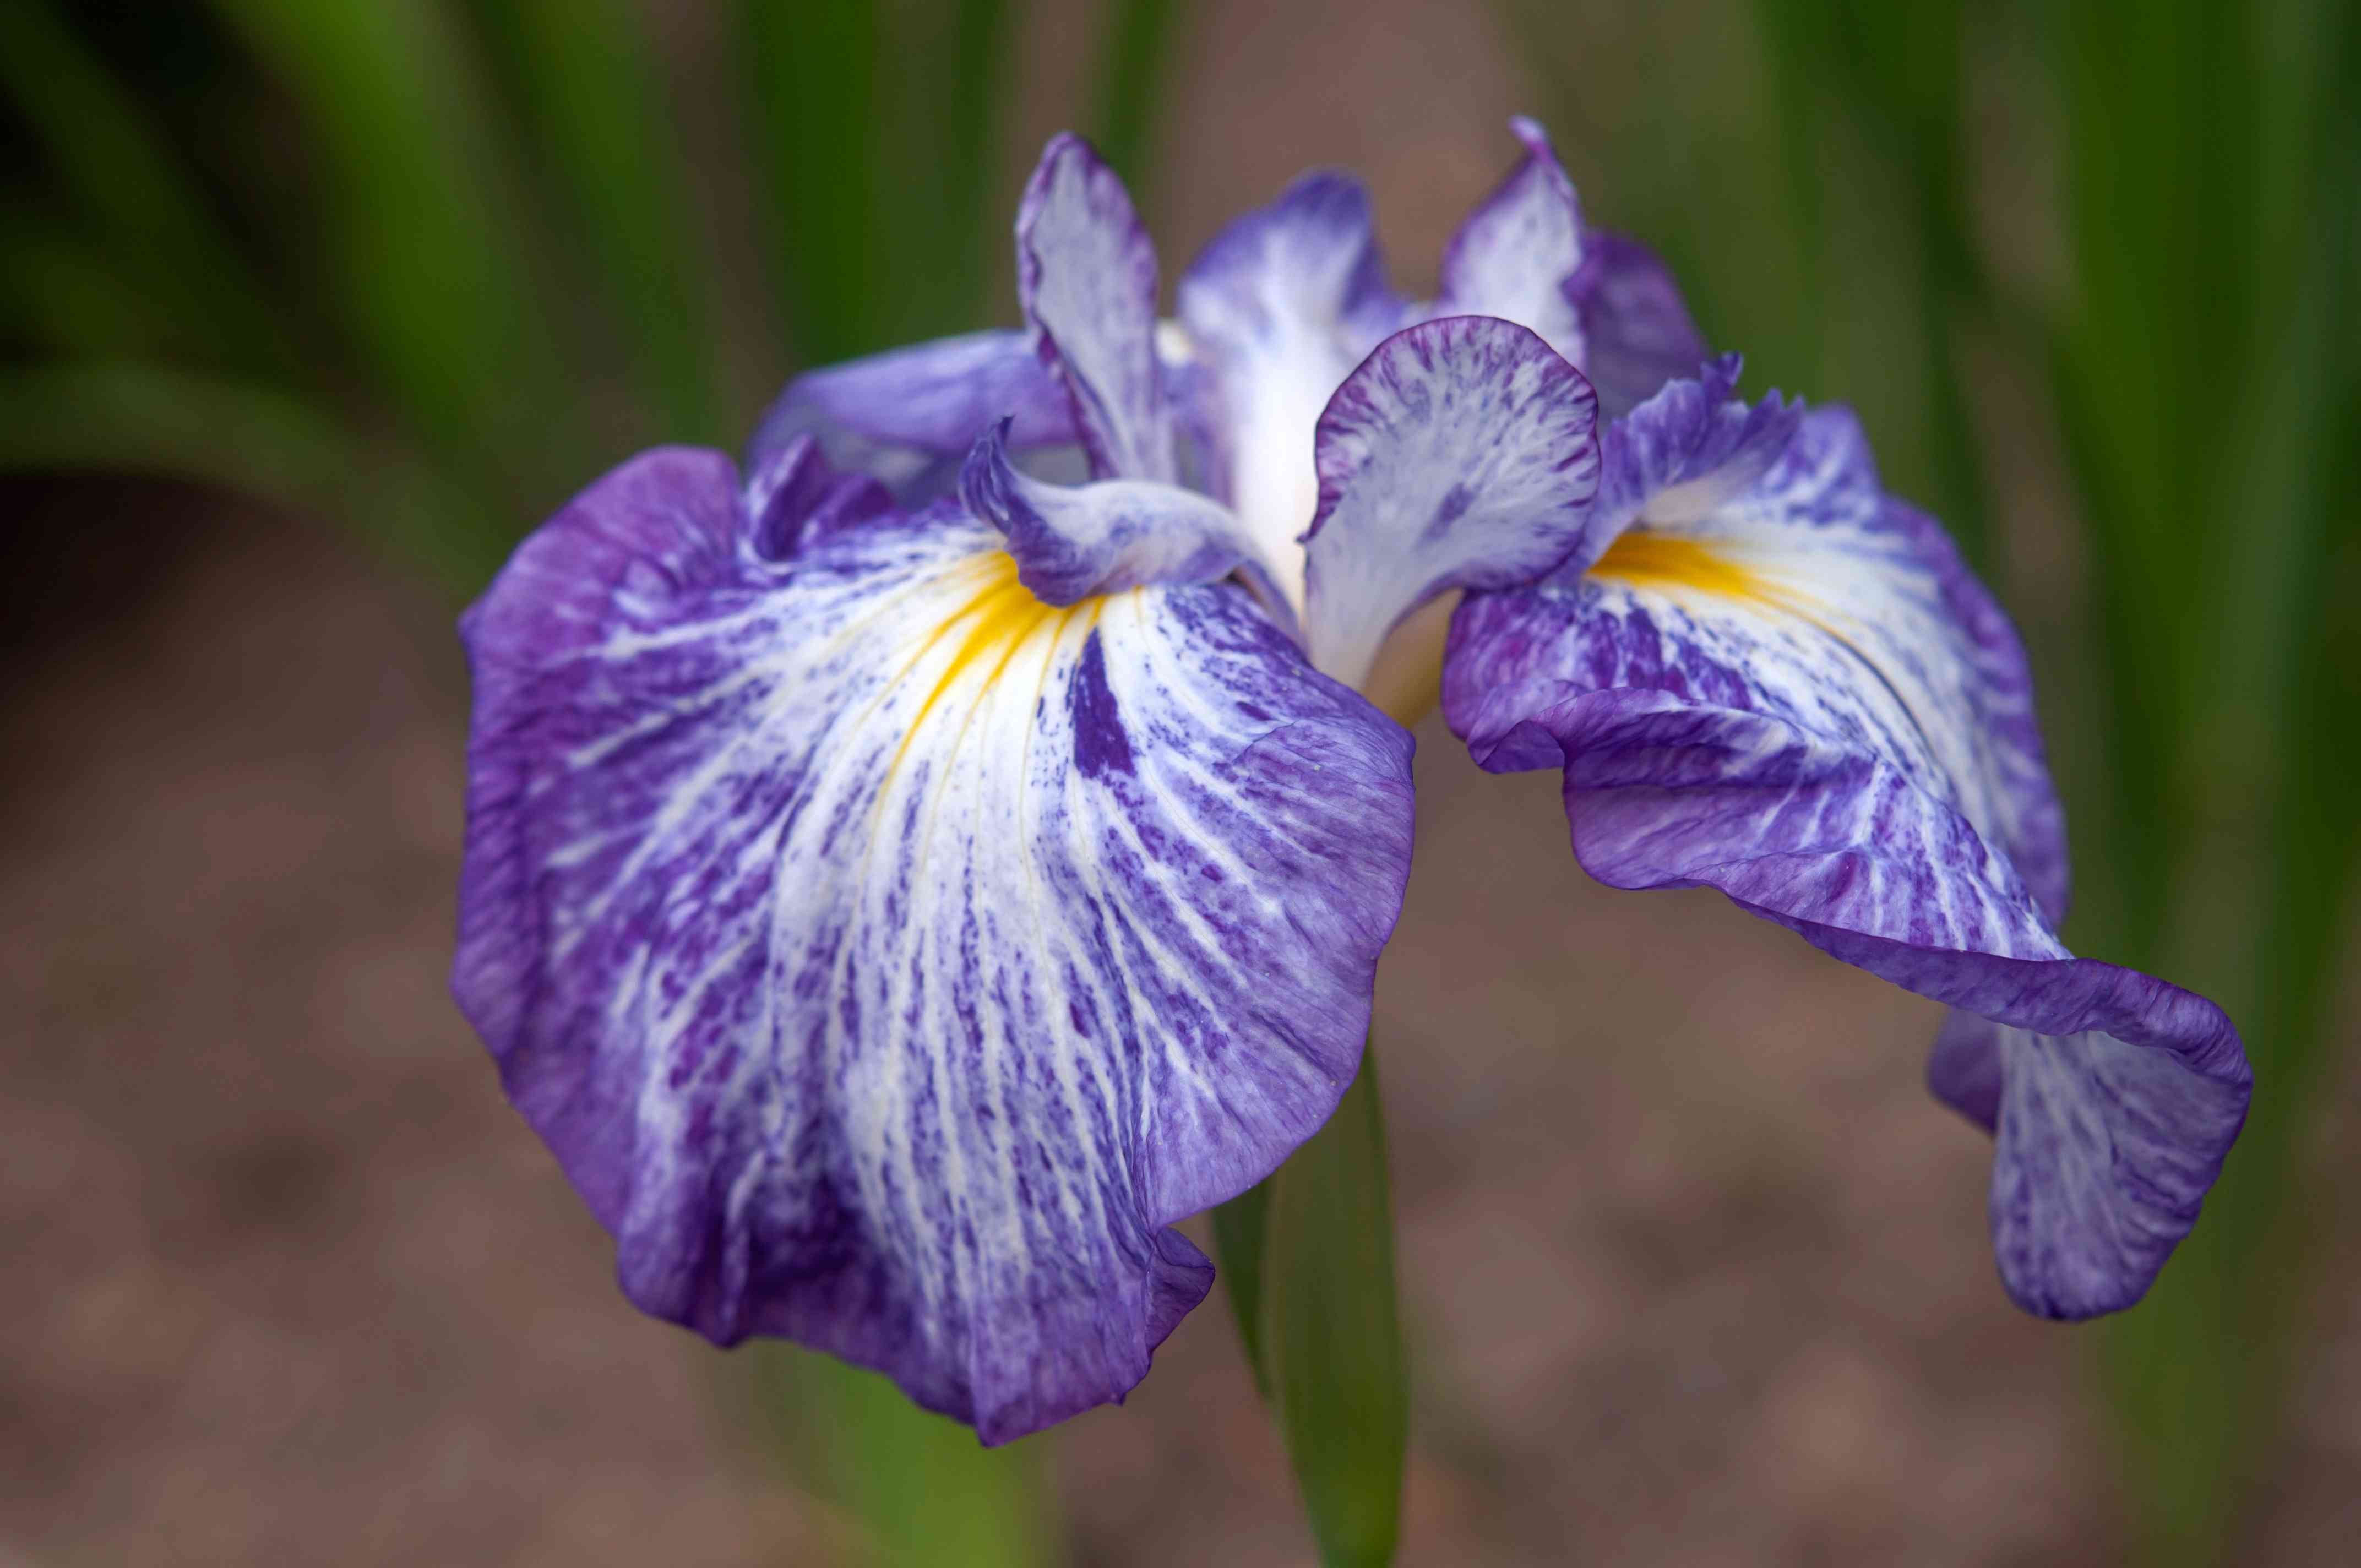 Japanese iris plant with purple, white and yellow streaked flat petals closeup